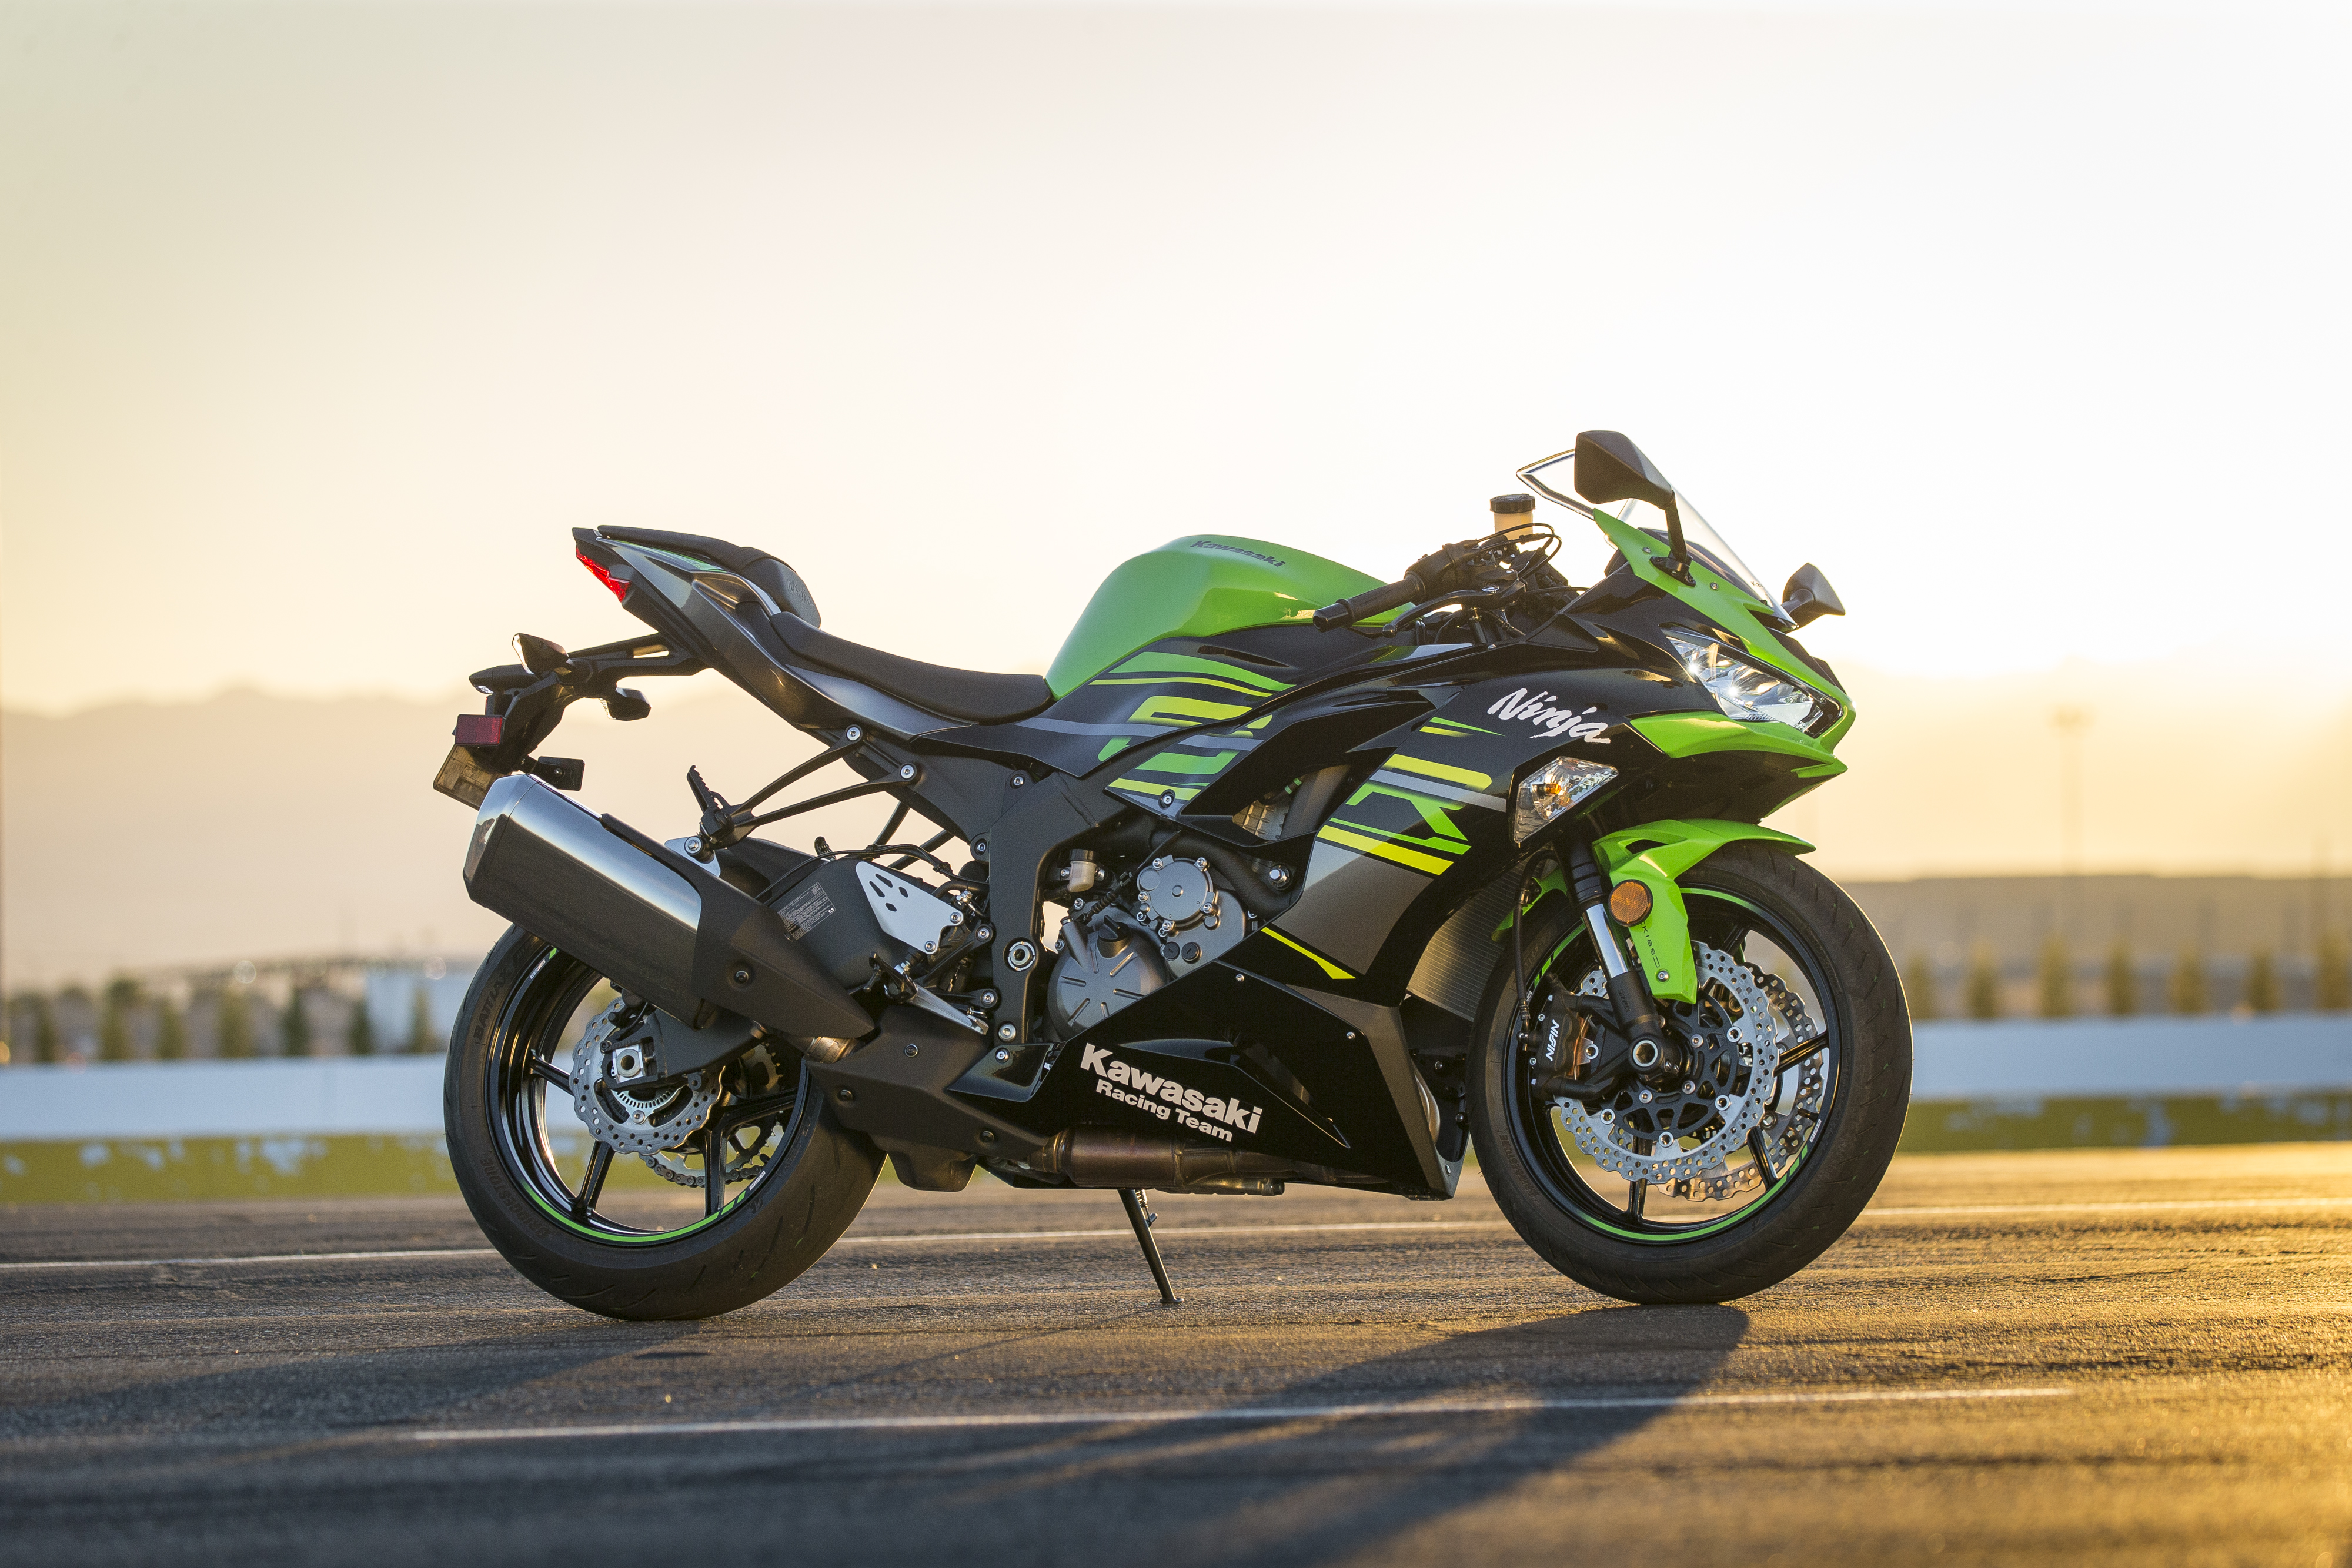 2019 Kawasaki Ninja ZX-6R first ride review - RevZilla